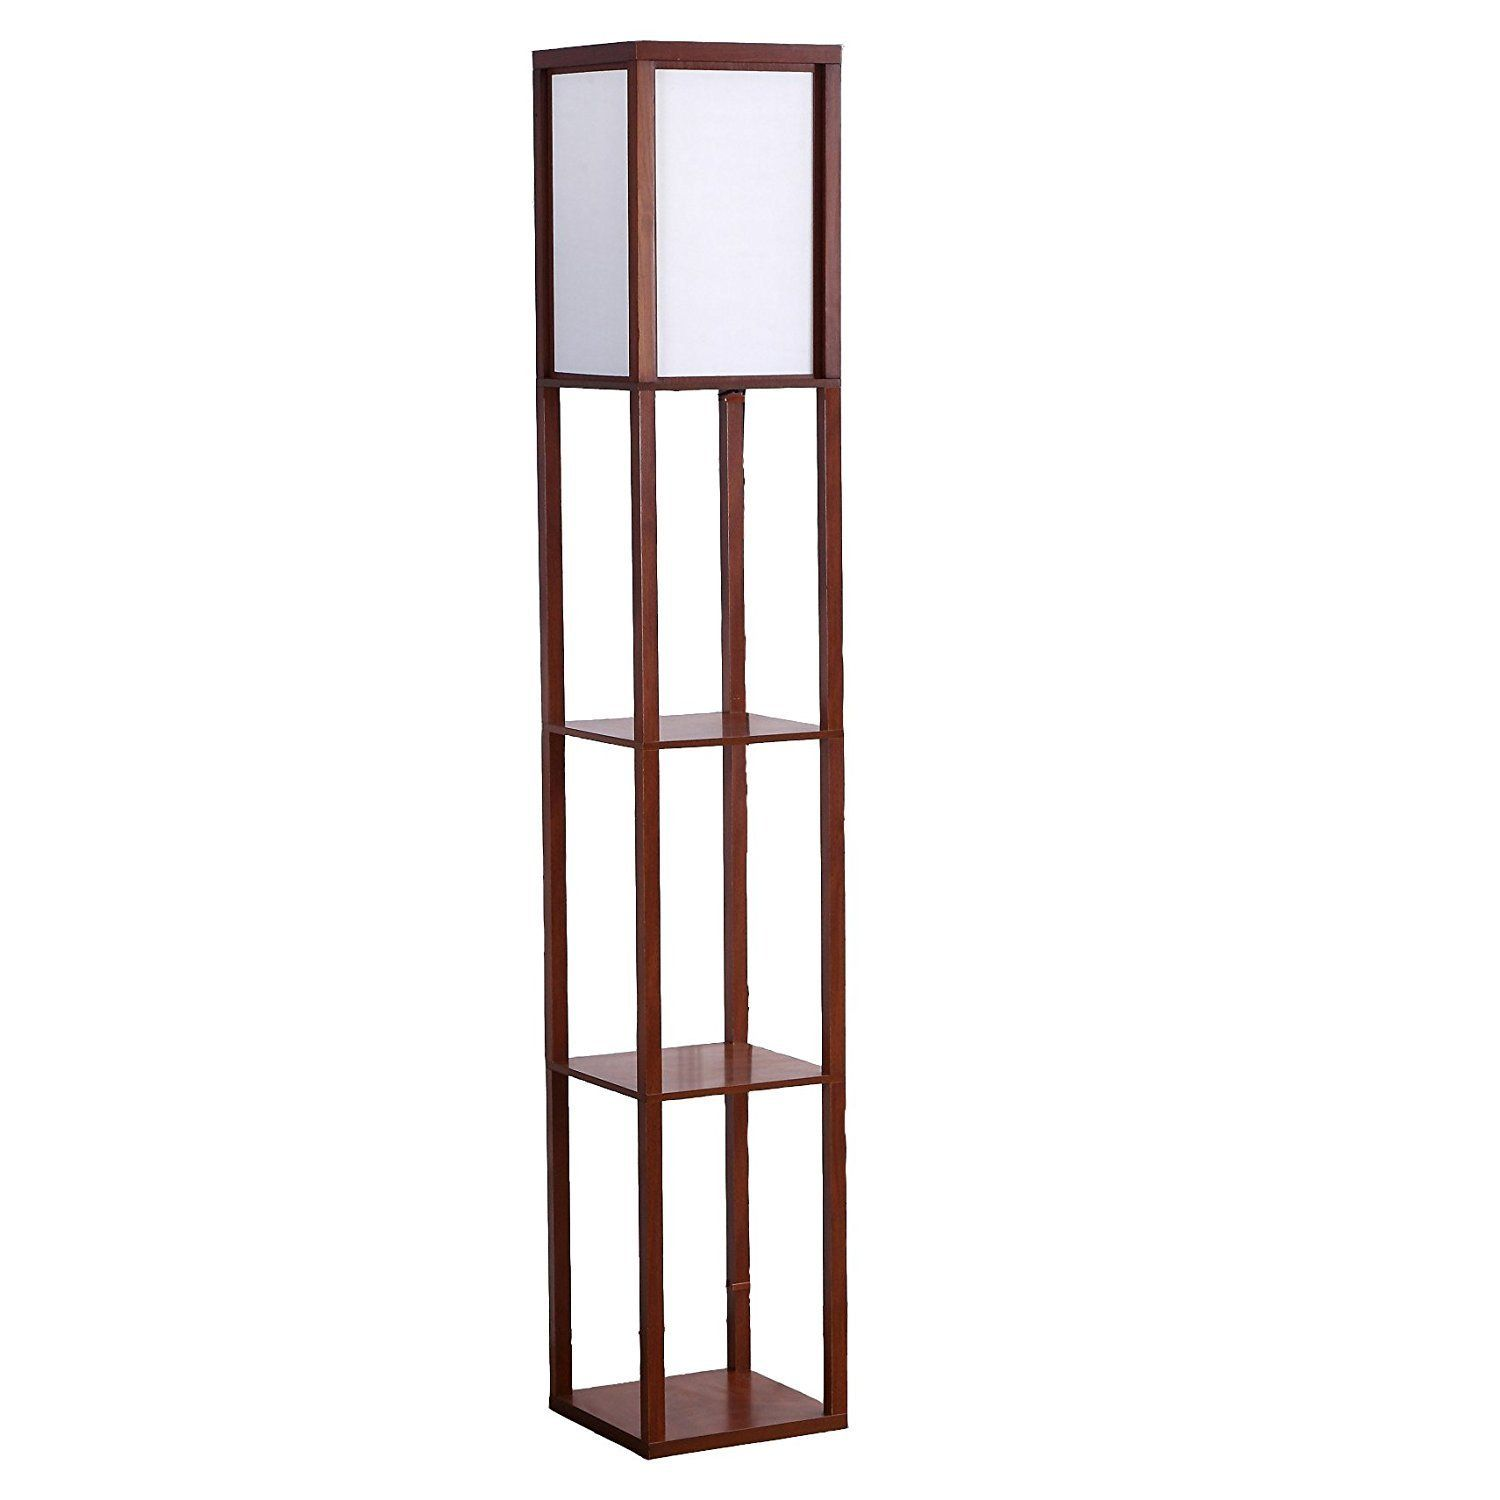 Brightech Maxwell Led Shelf Floor Lamp Modern Asian Style Standing Lamp With Soft Diffused Uplight White Floor Lamp Modern Floor Lamps Natural Wood Frames